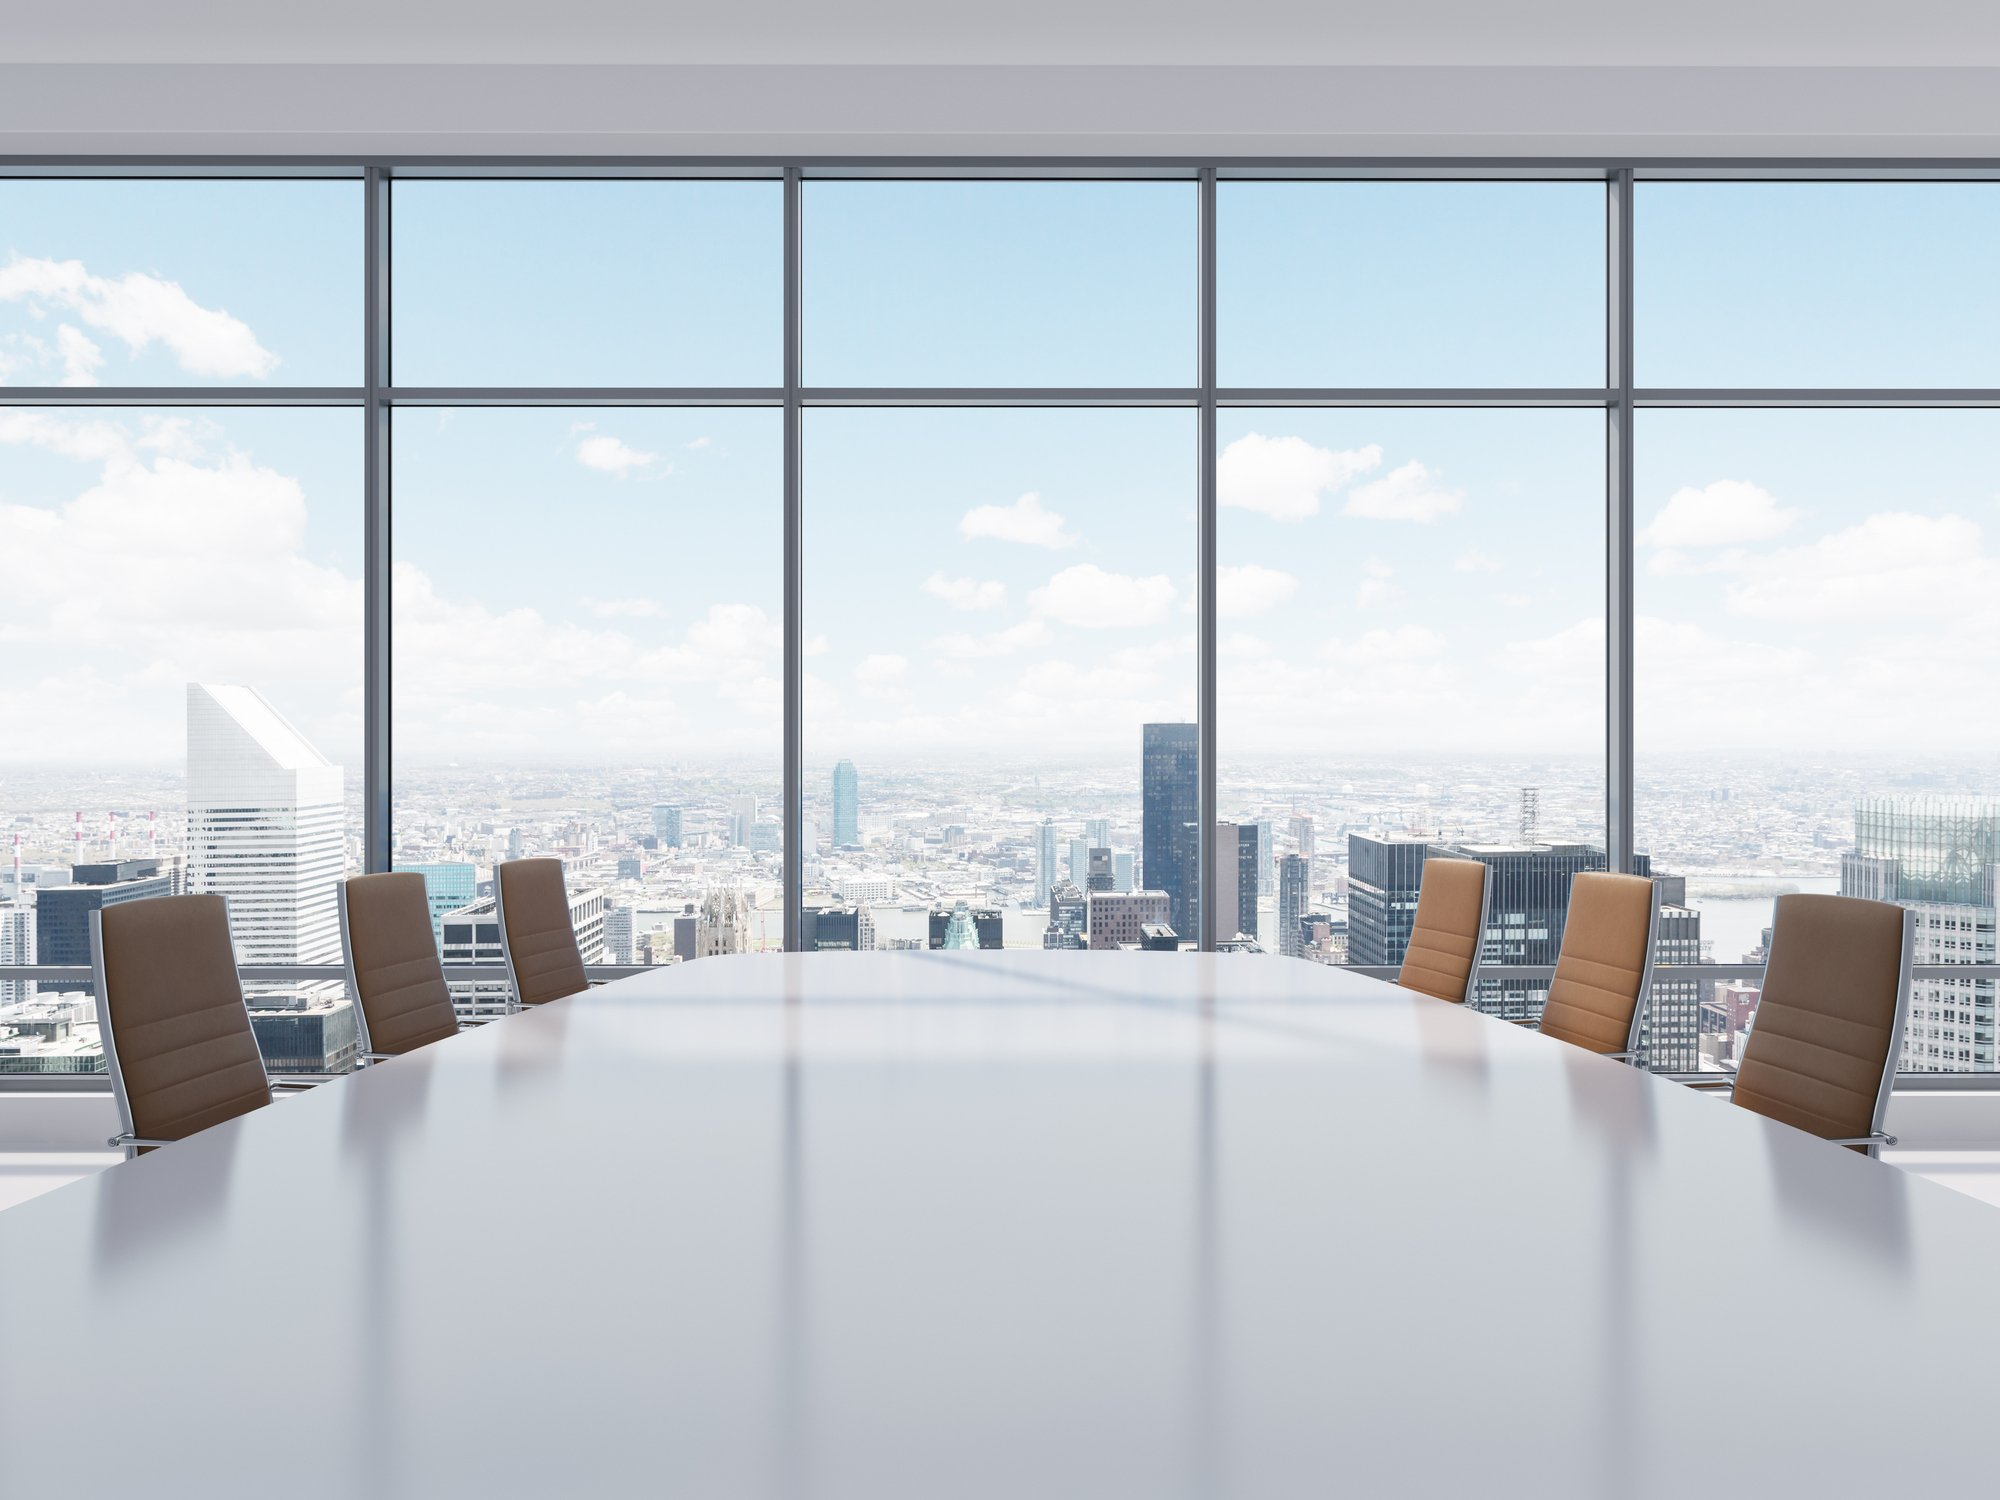 Boardroom cybersecurity